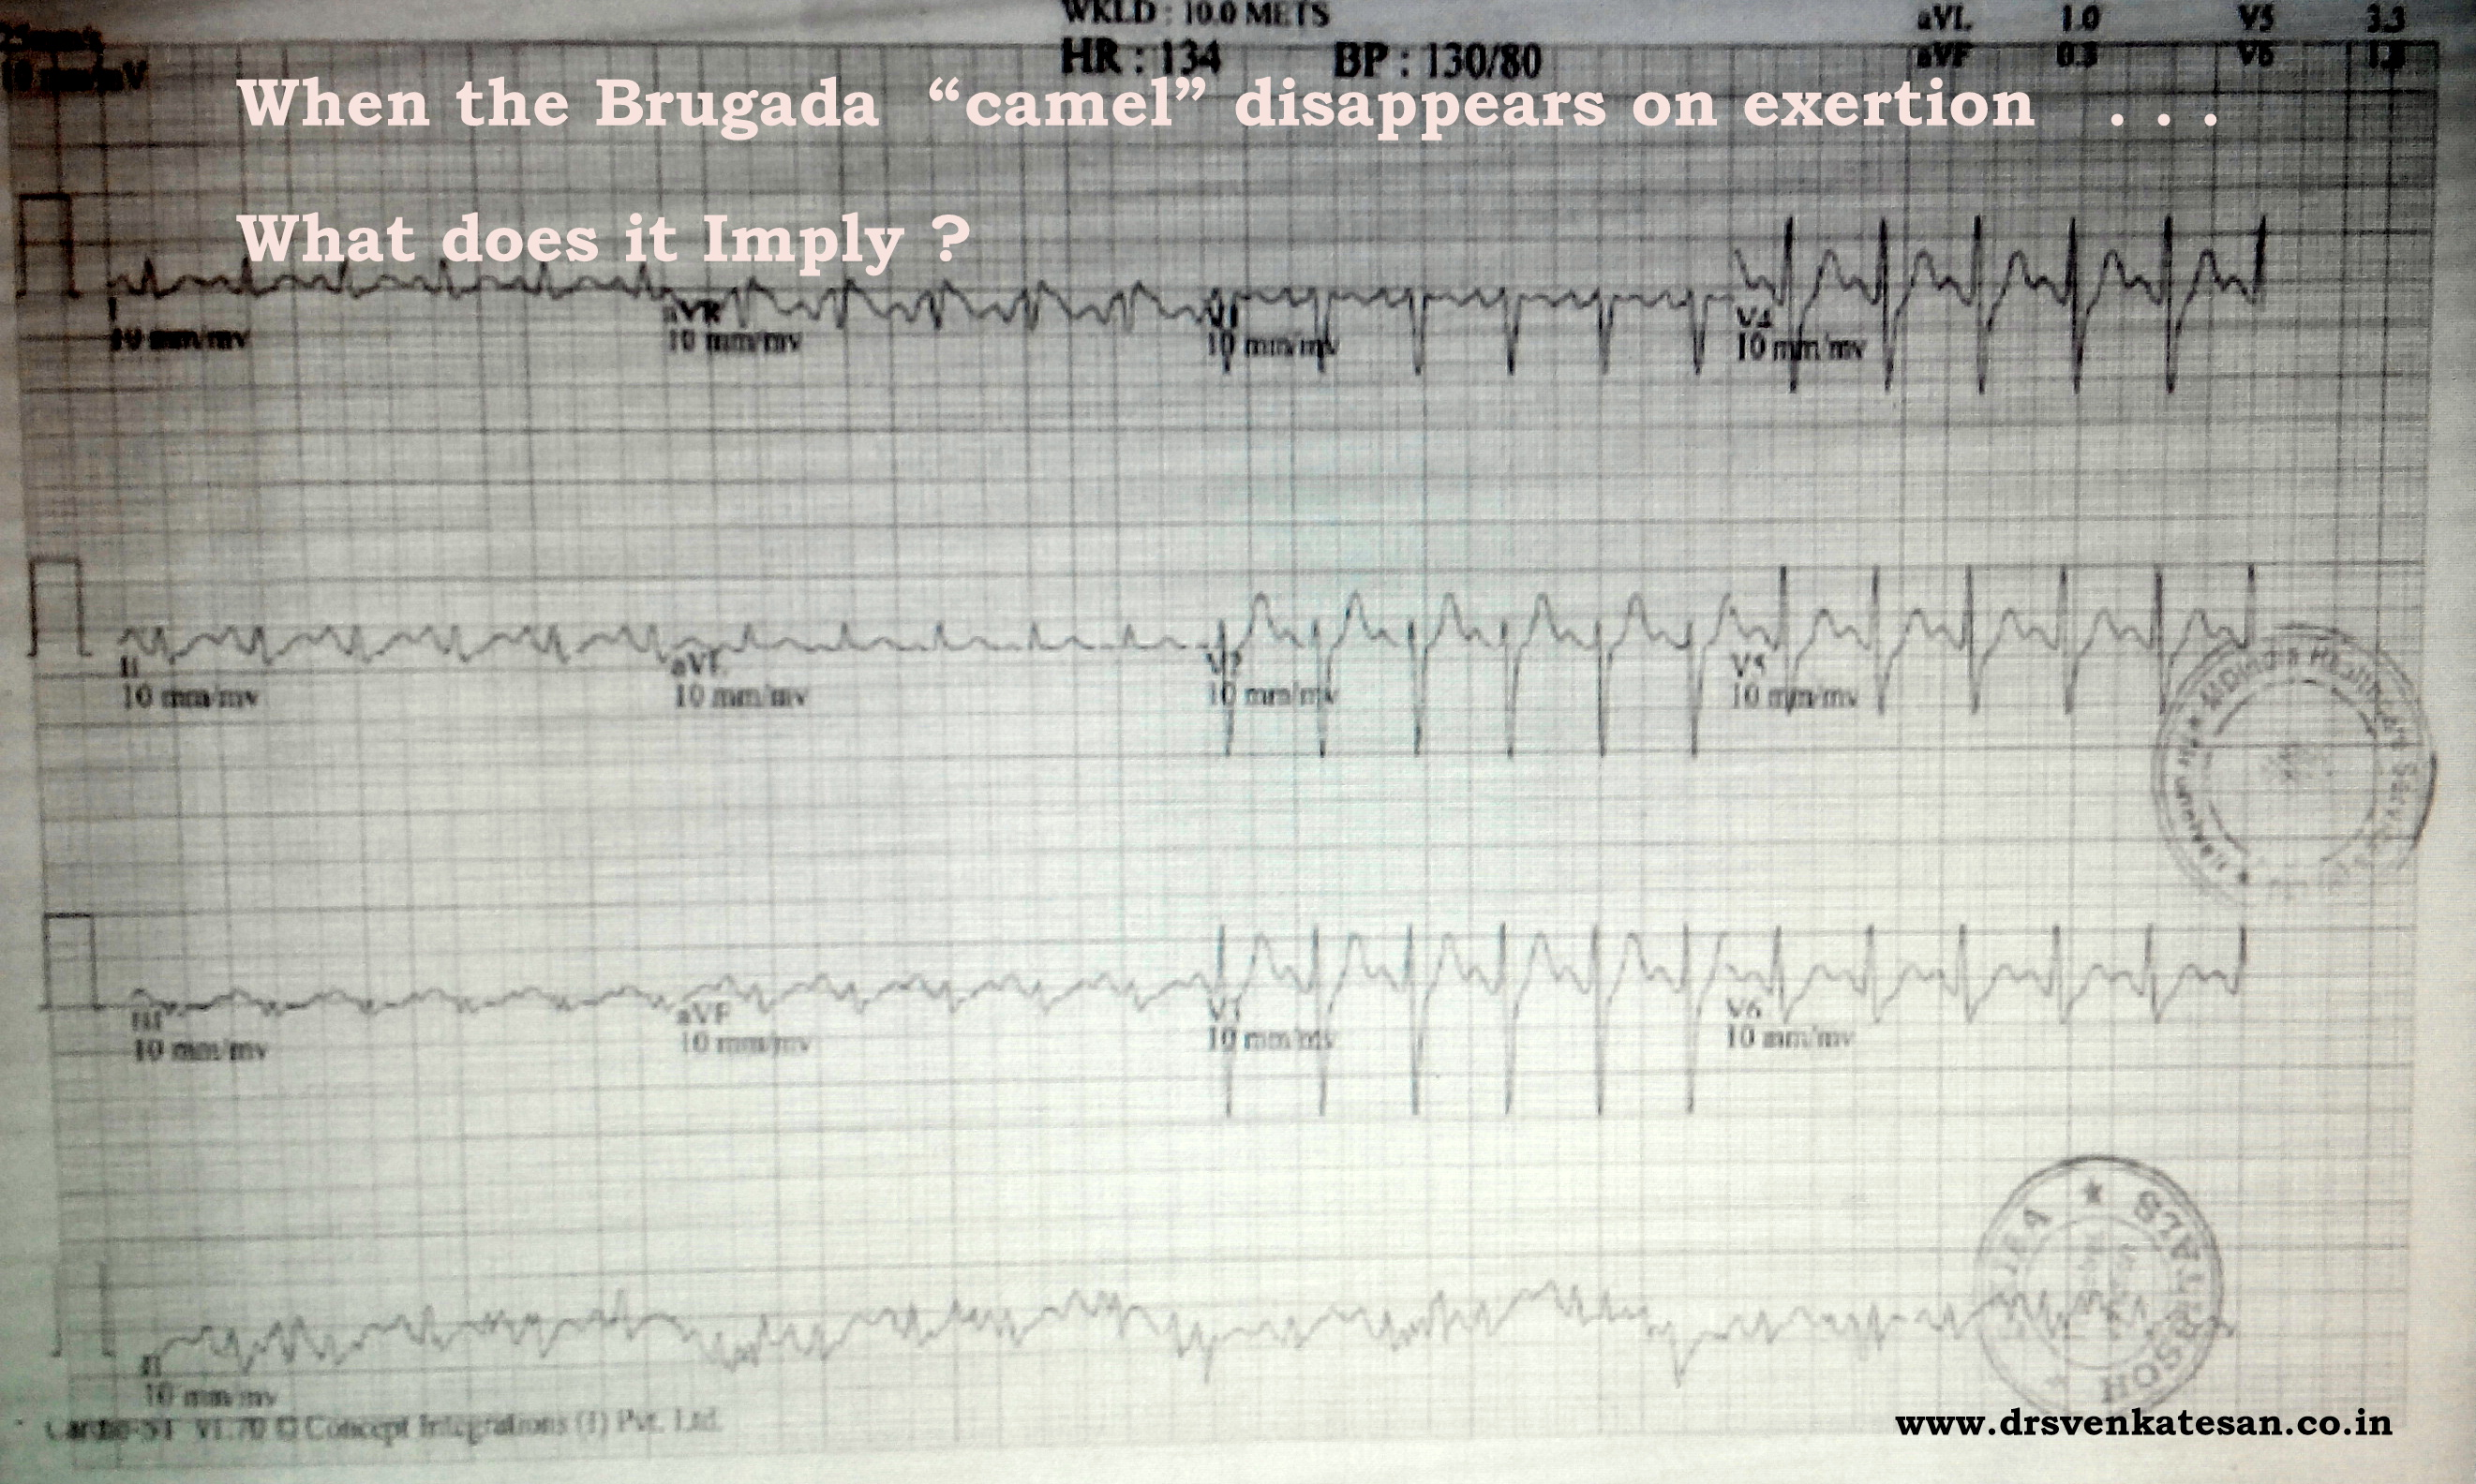 Brugada ecg camel on exertion